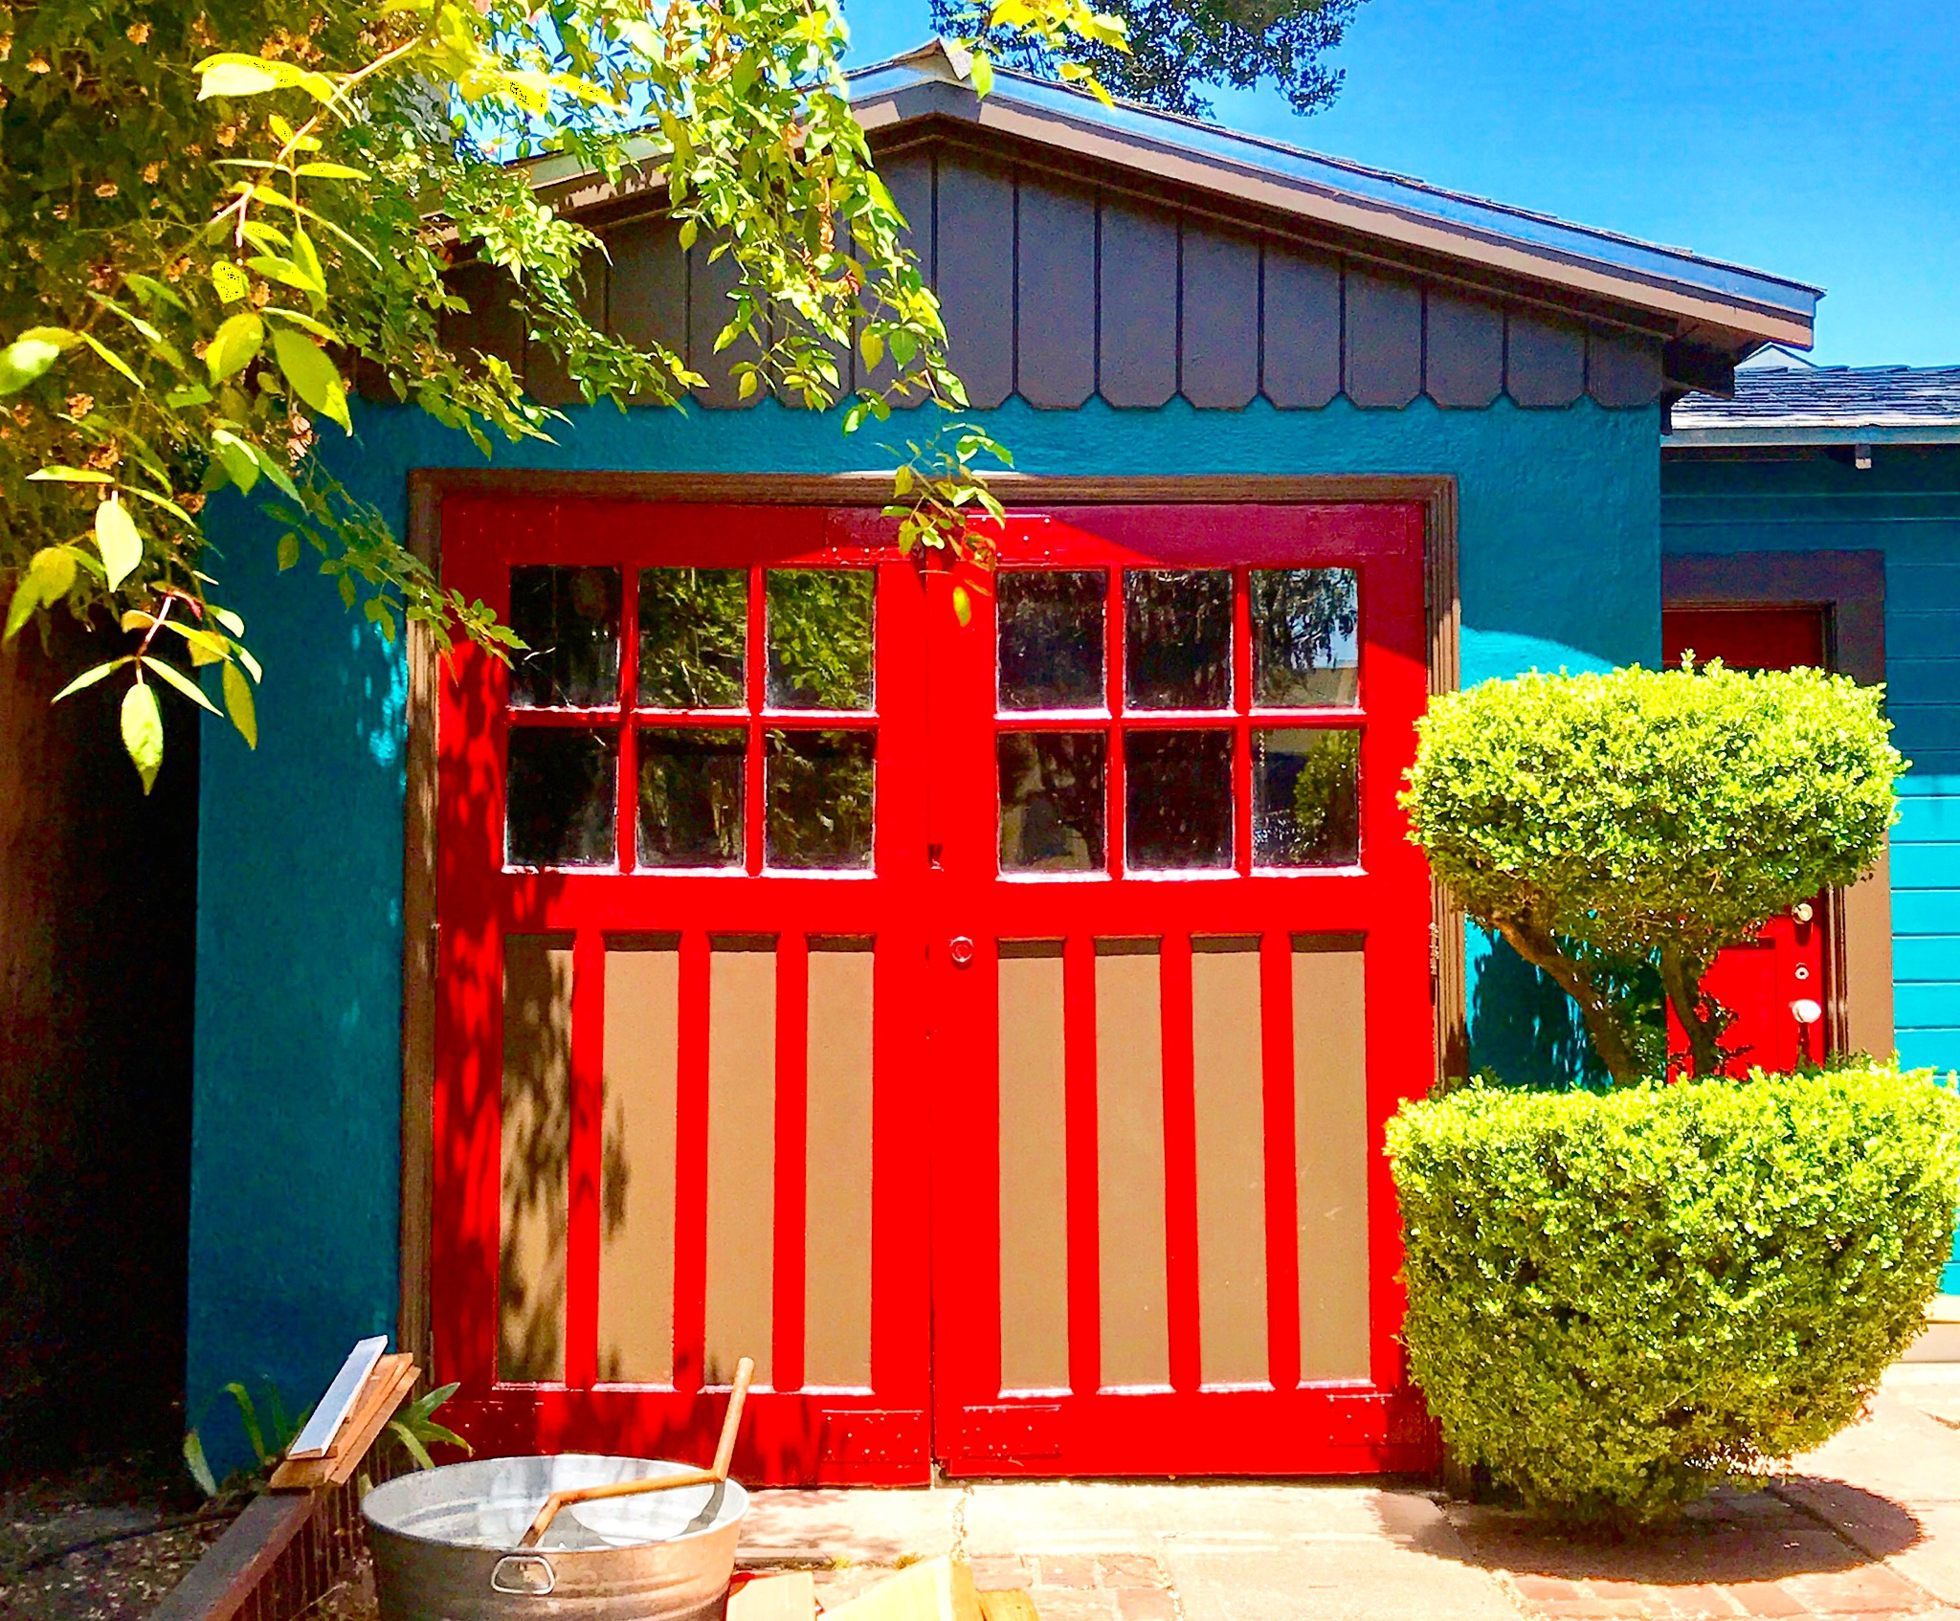 Blue and red painted detached garage